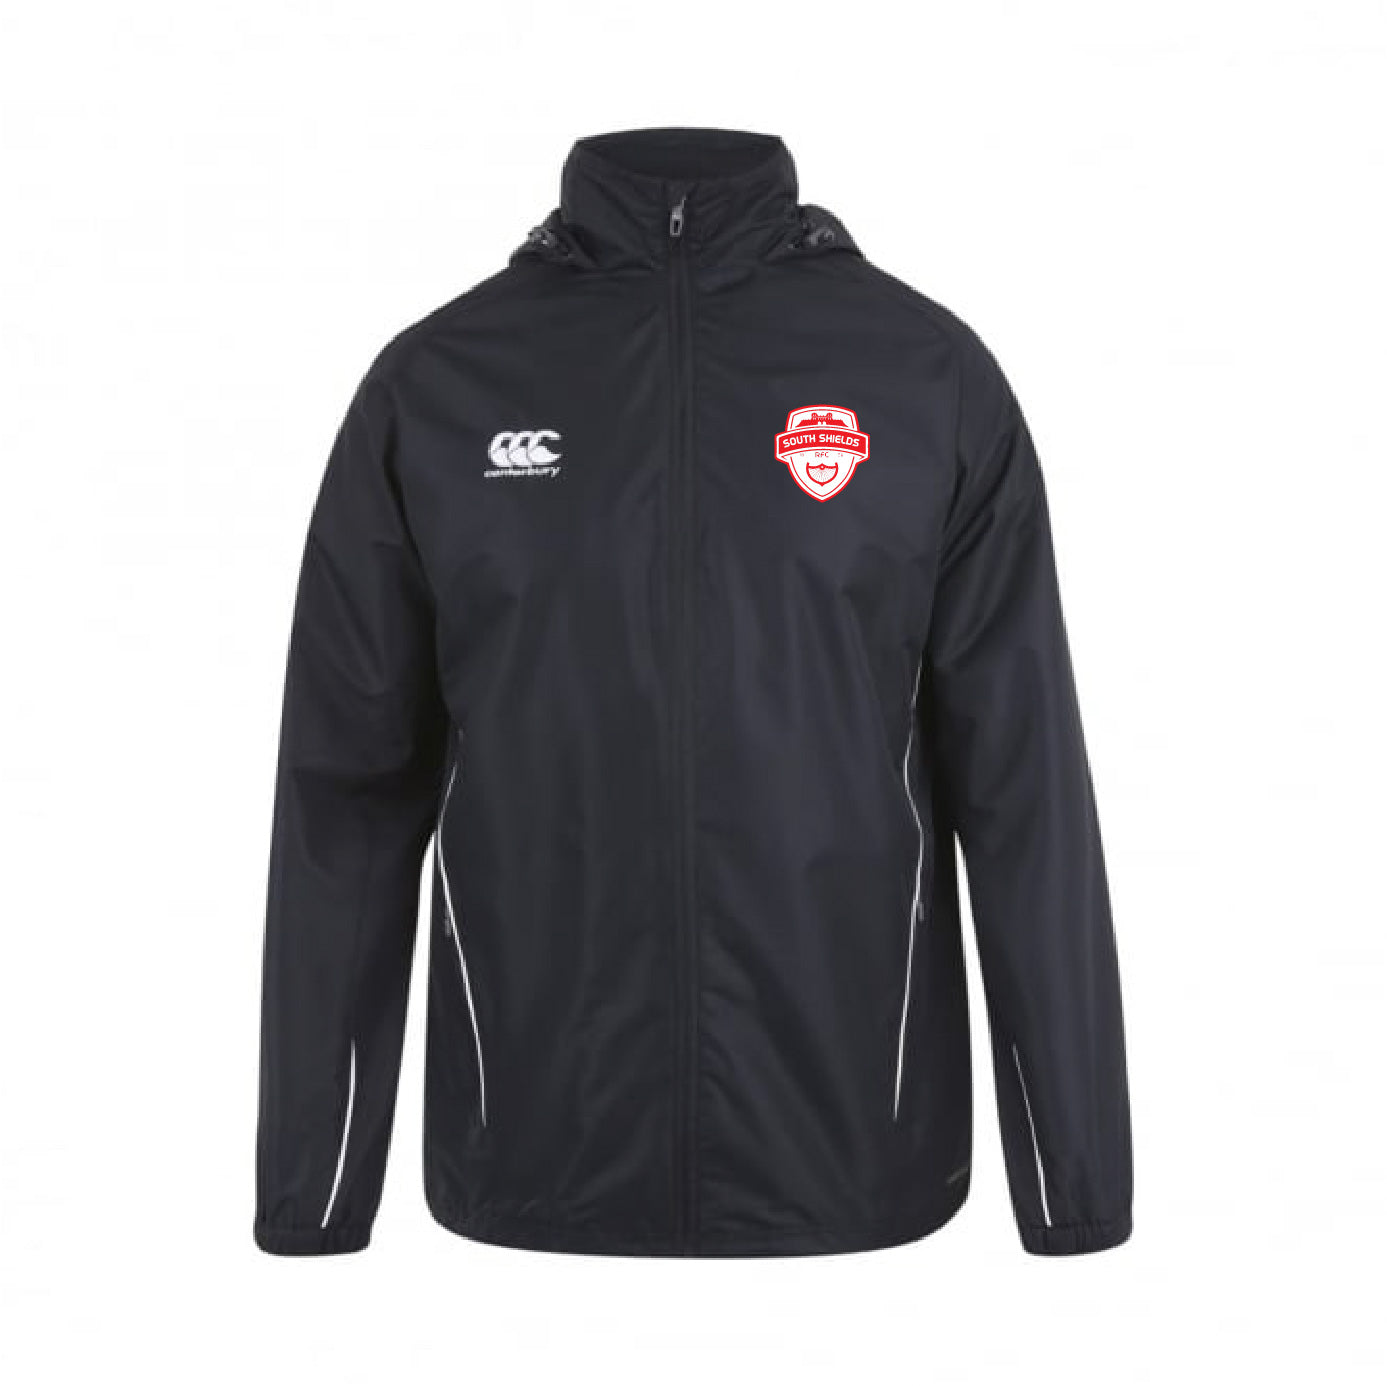 South Shields RFC CCC Team Full Zip Rain Jacket Senior